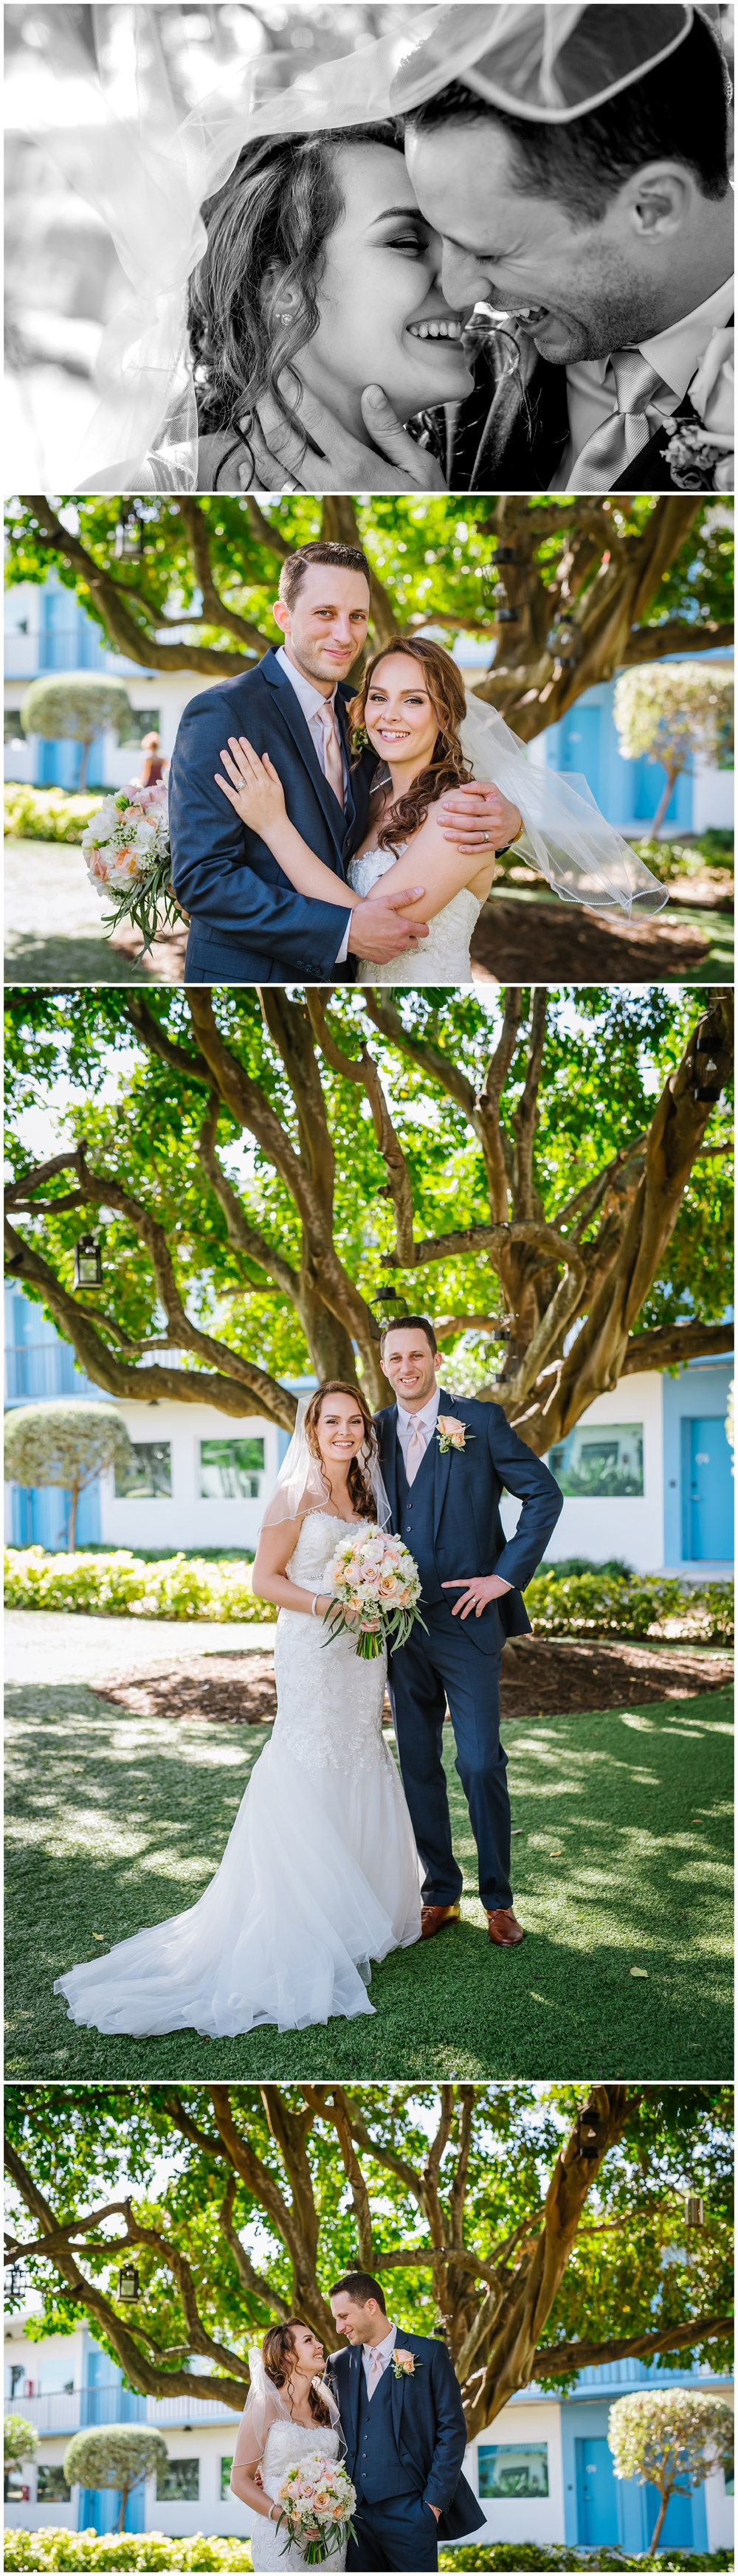 st-pete-wedding-photographer-blush-romantic-post-card-inn-beach_0325.jpg